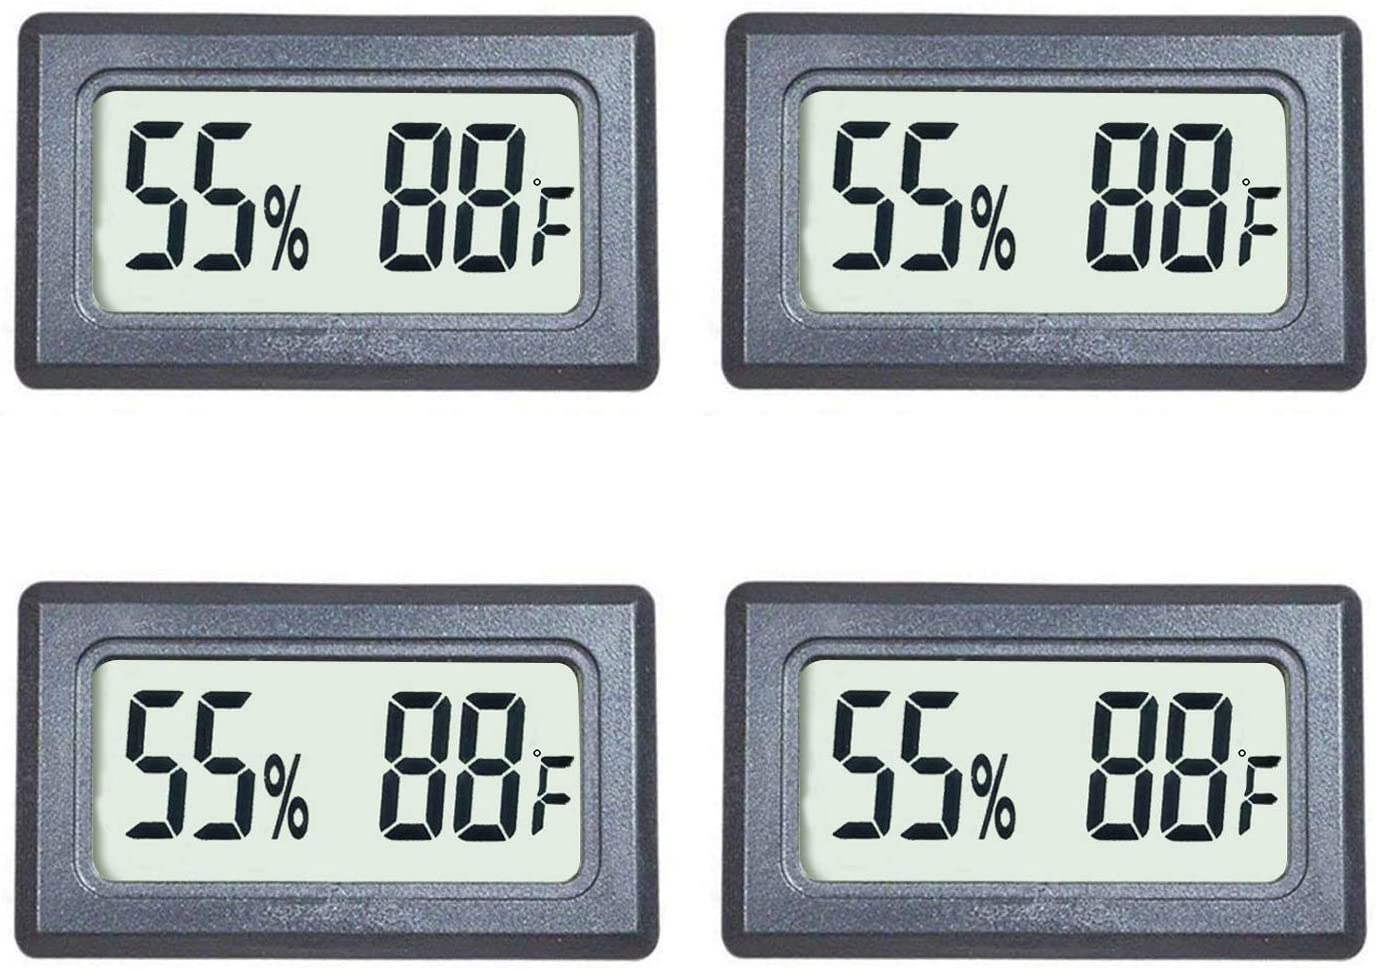 Kinyanco 4-Pack Mini Hygrometers Thermometer with Large Number Display Fahrenheit (℉) Humidity and Temperature Meters for Home Office Humidors Jars Incubators Guitar Case …